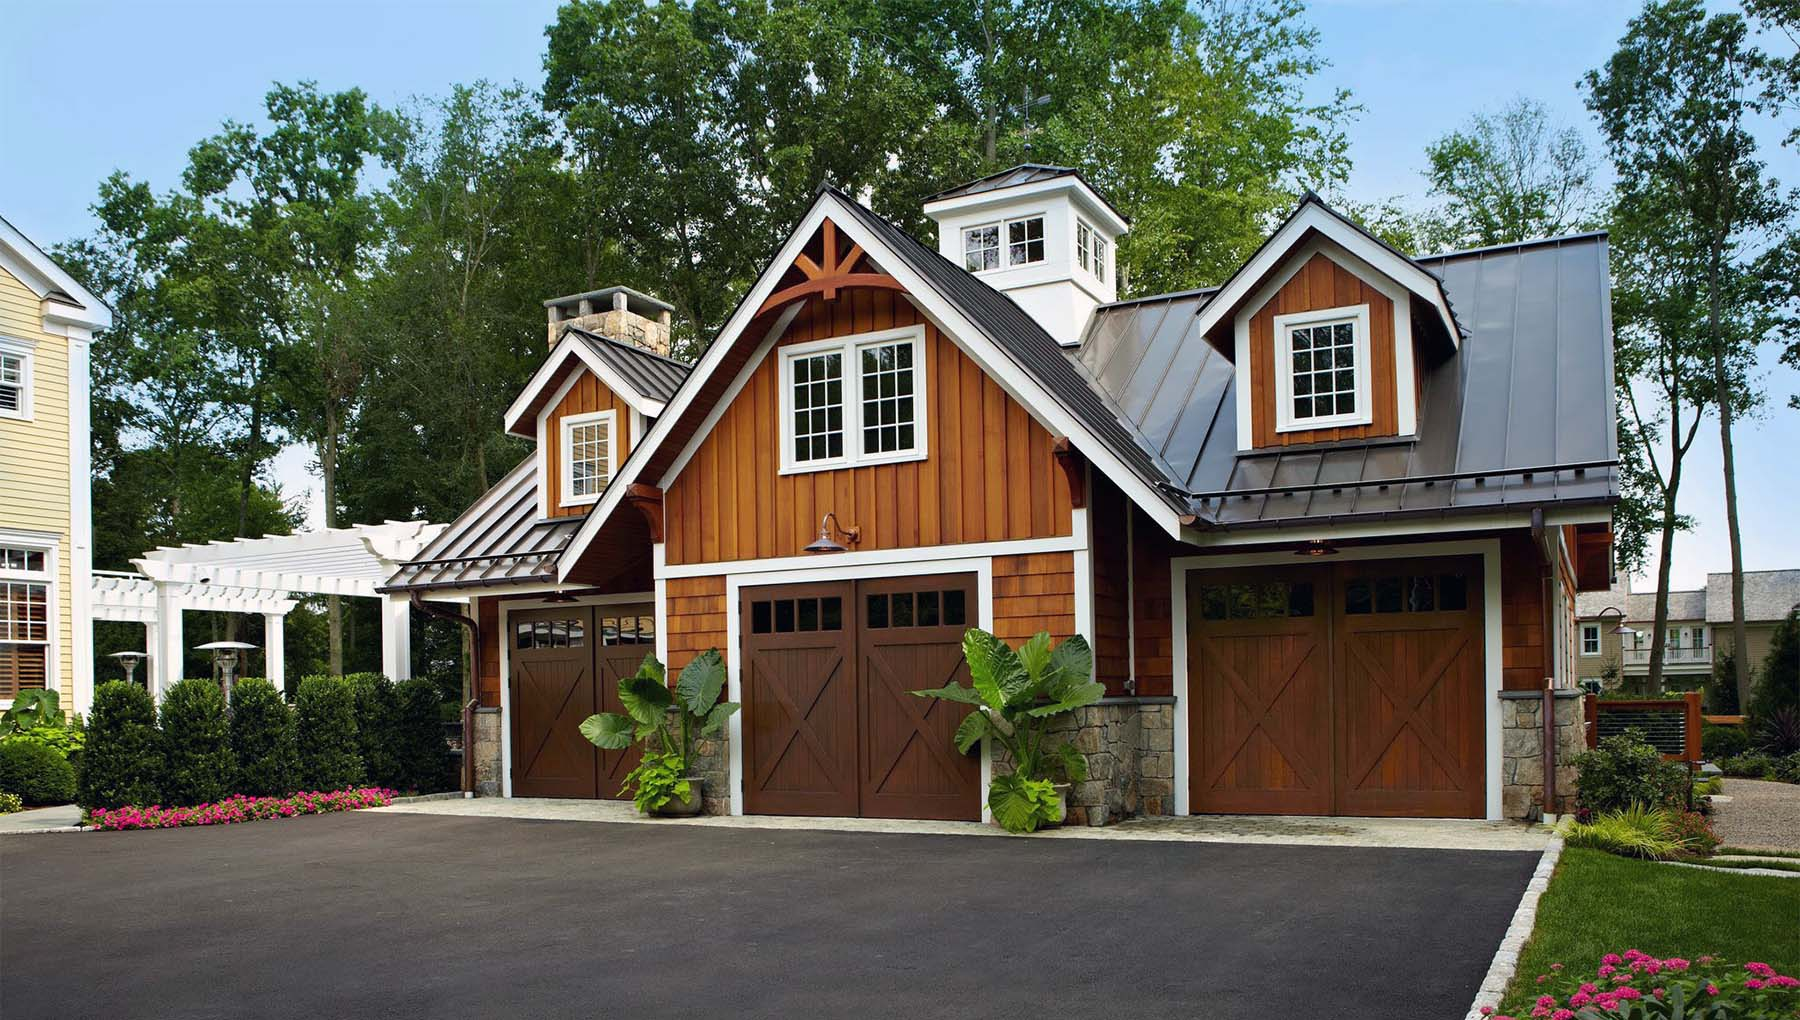 3 car detached garage designs with living space